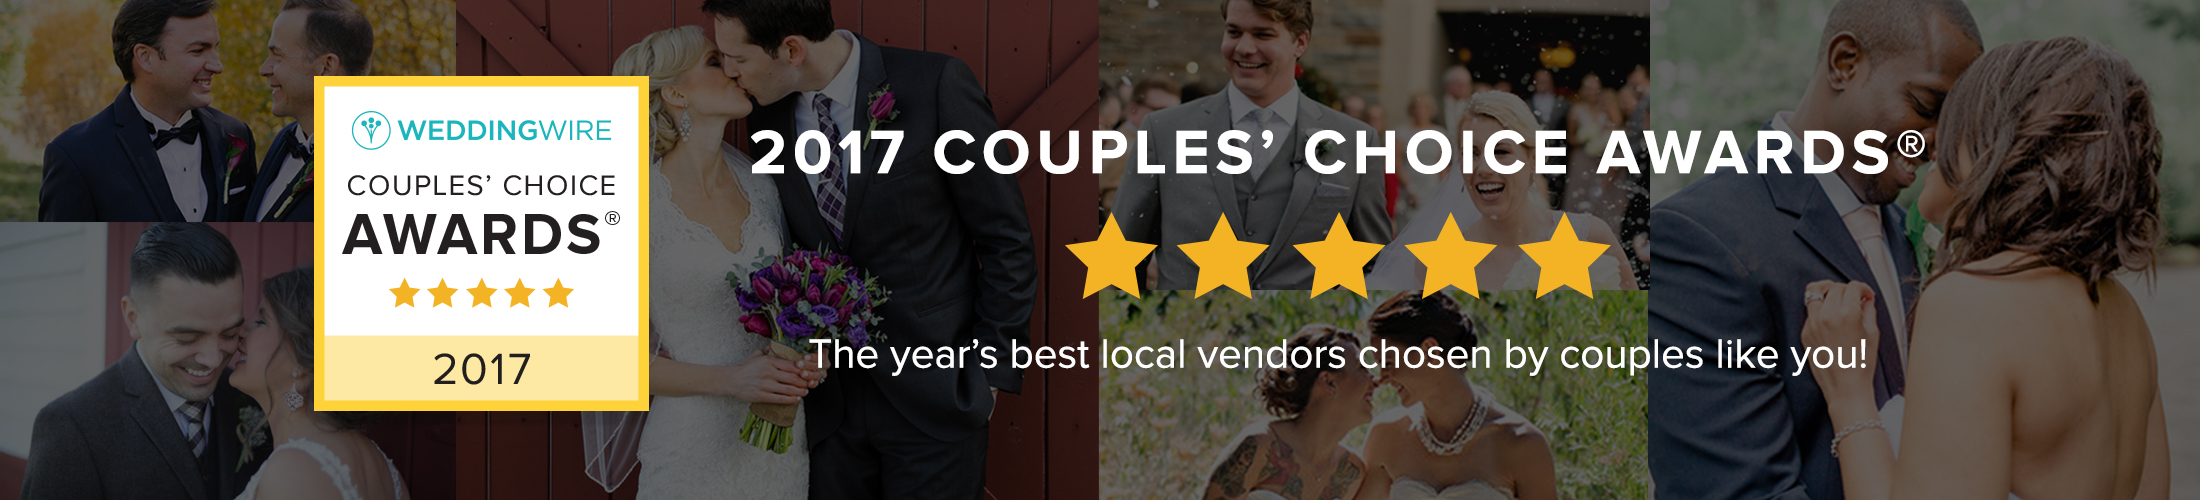 WeddingWire Couples' Choice Award® 2017